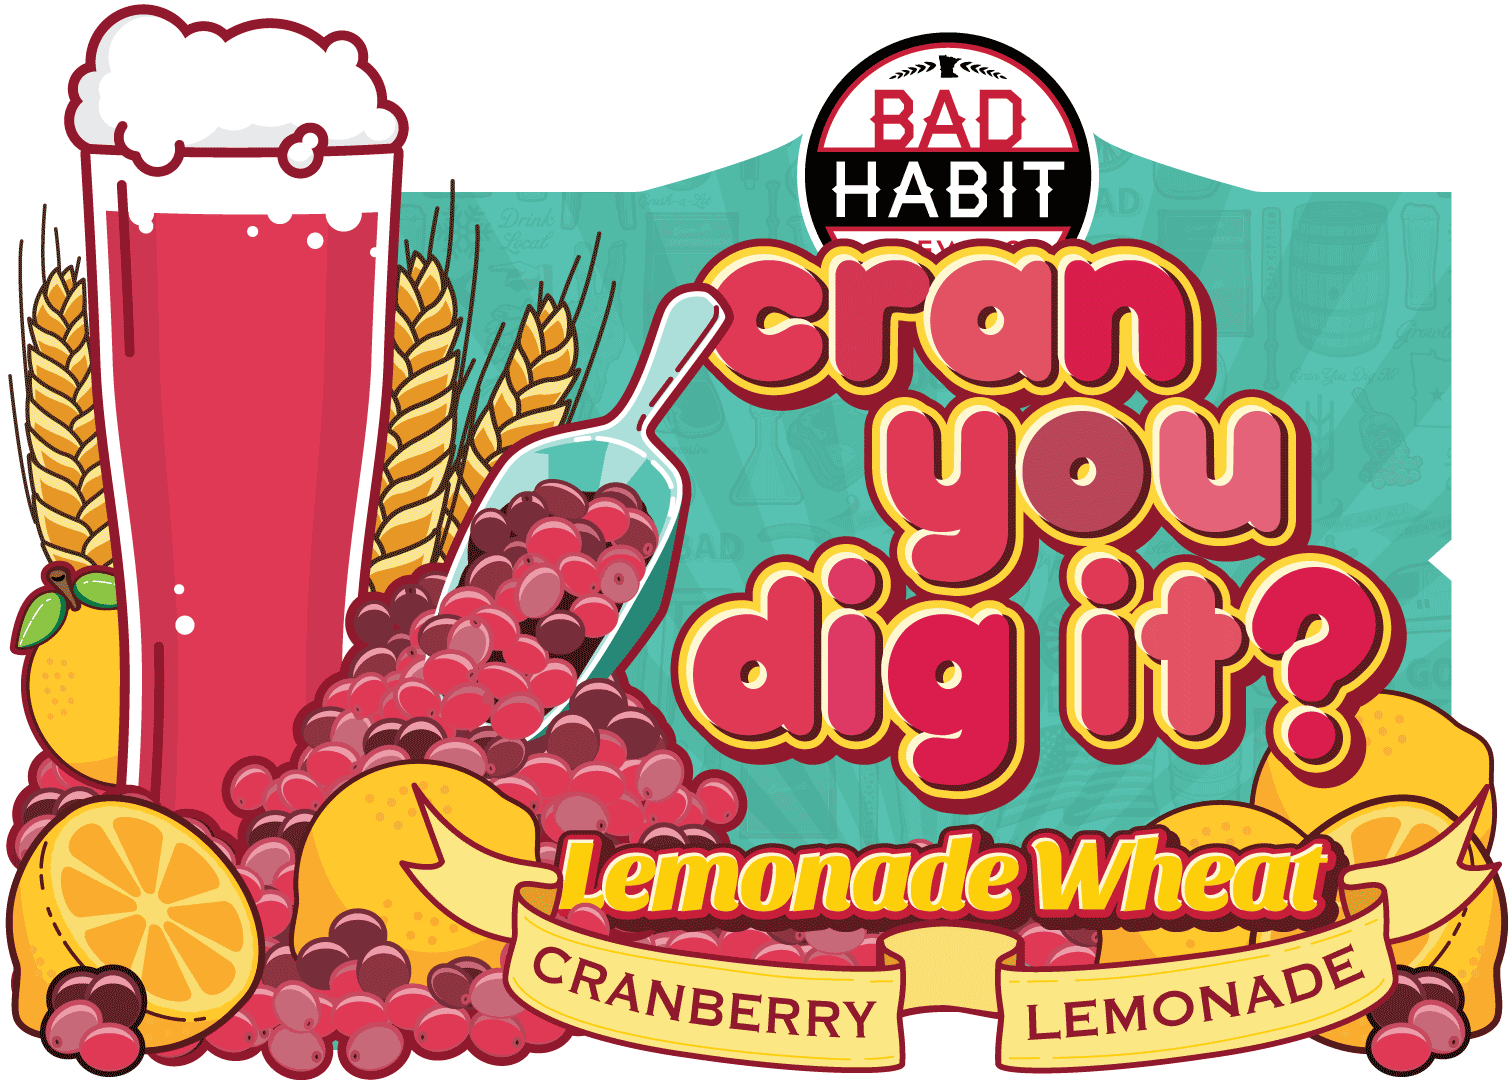 CRAN YOU DIG IT?LEMONADE WHEAT - Cranberry Lemonade Wheat | 6% ABVAll the bready, malty characteristics of a good wheat beer, infused with the delicious, tart fruitiness of cranberry and sweet refreshing lemonade. Light, fruity & refreshing!